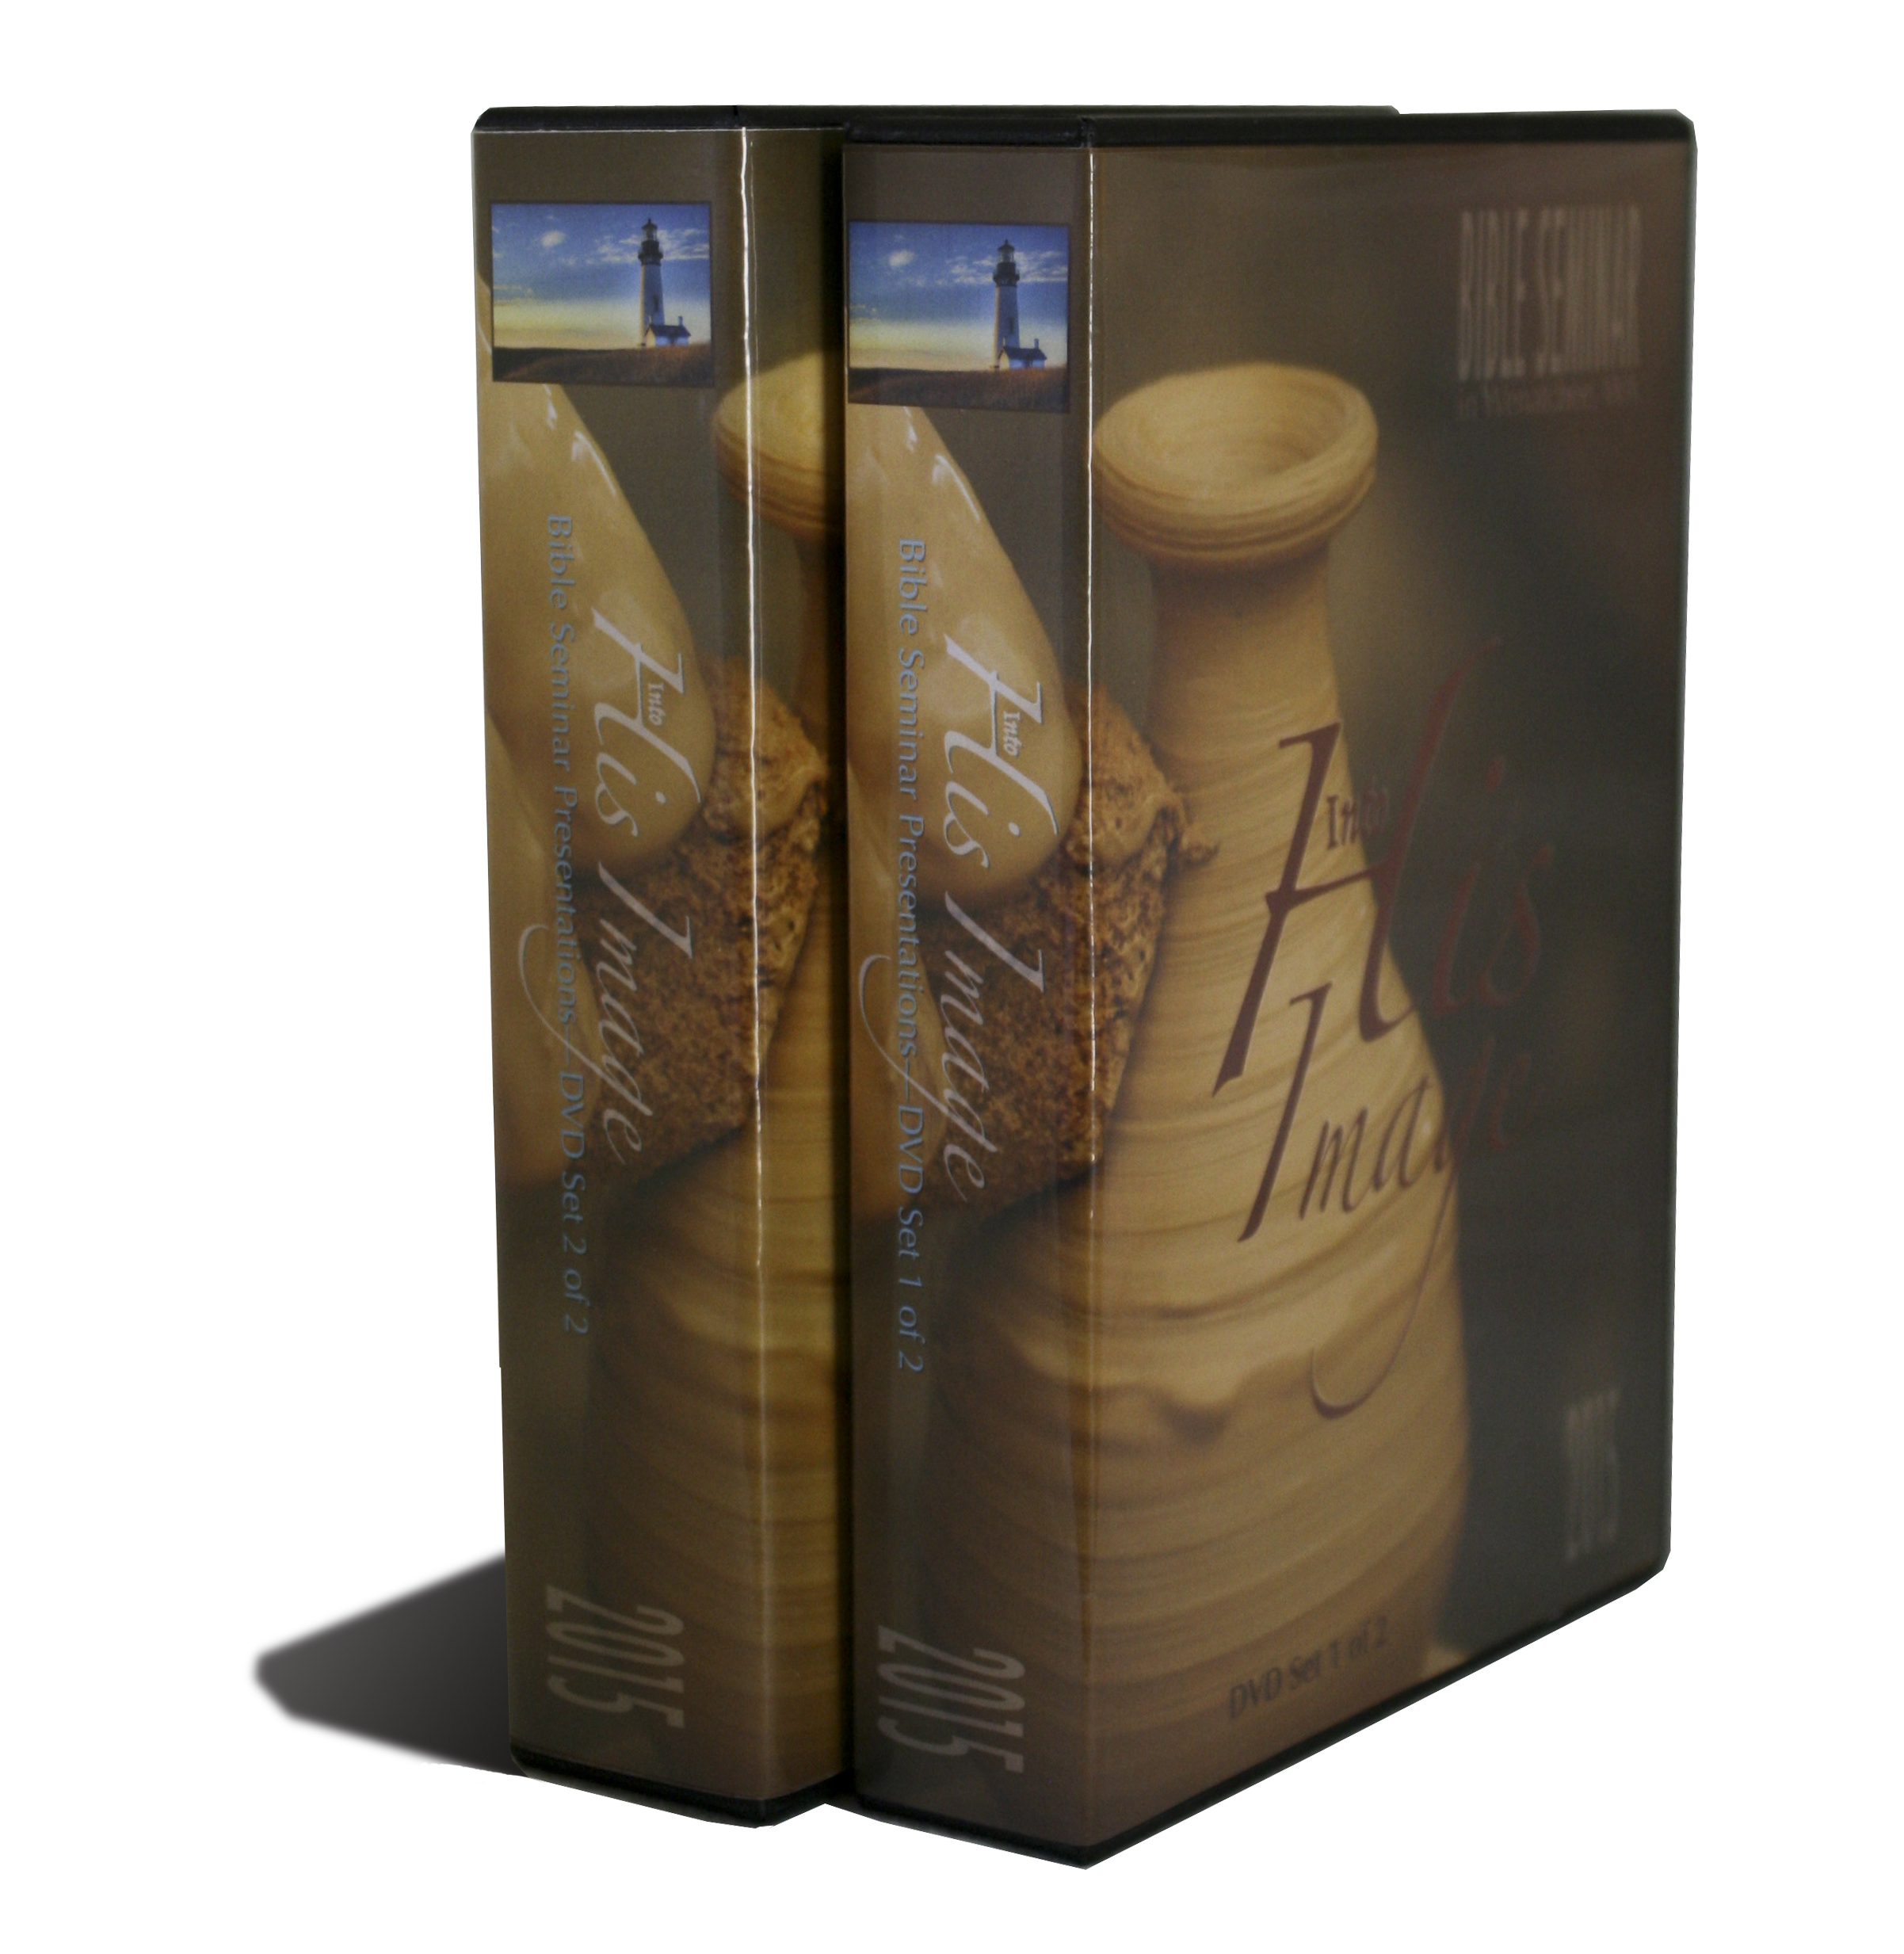 2 DVD cases contain the 22 disc-presentations